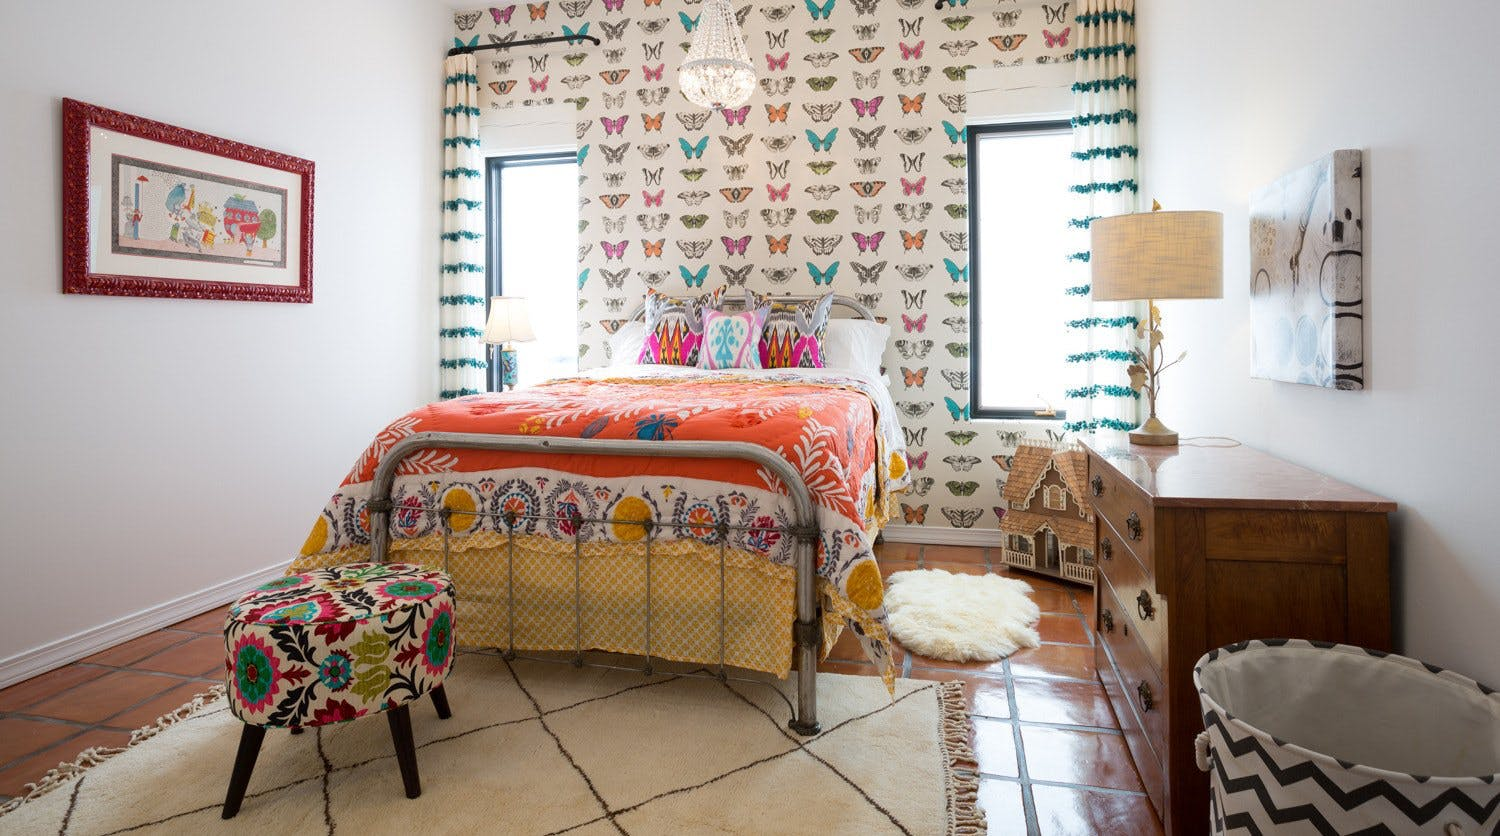 Such a cute Midcentury rug and colorful bedding combo